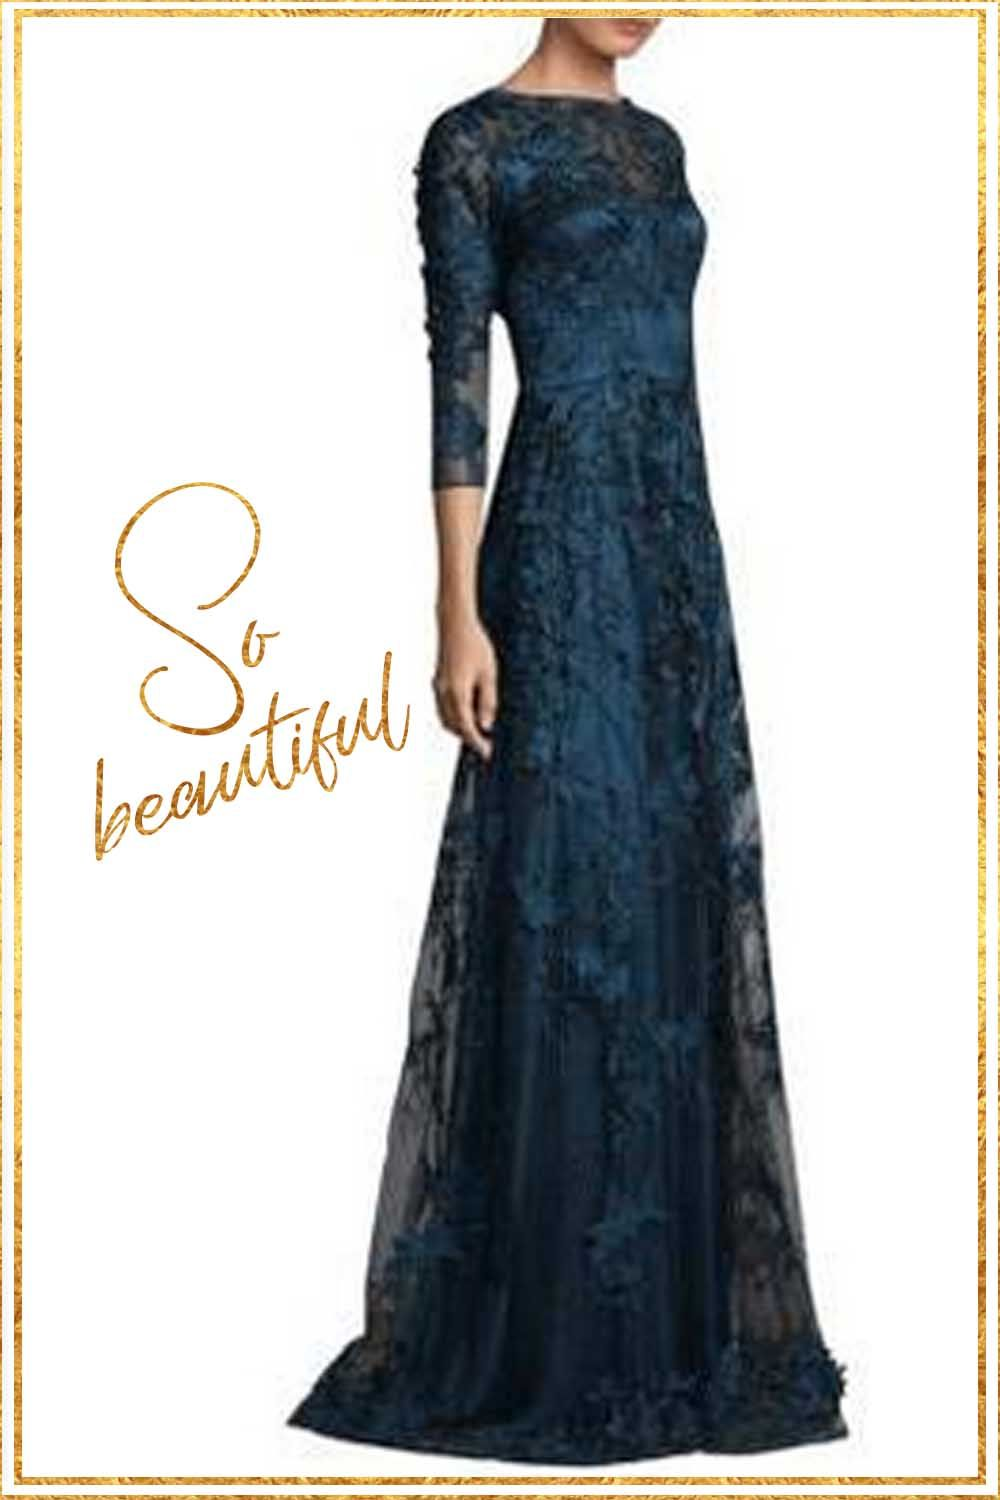 Floorlength overlay mesh gown in embroidered lace design roundneck